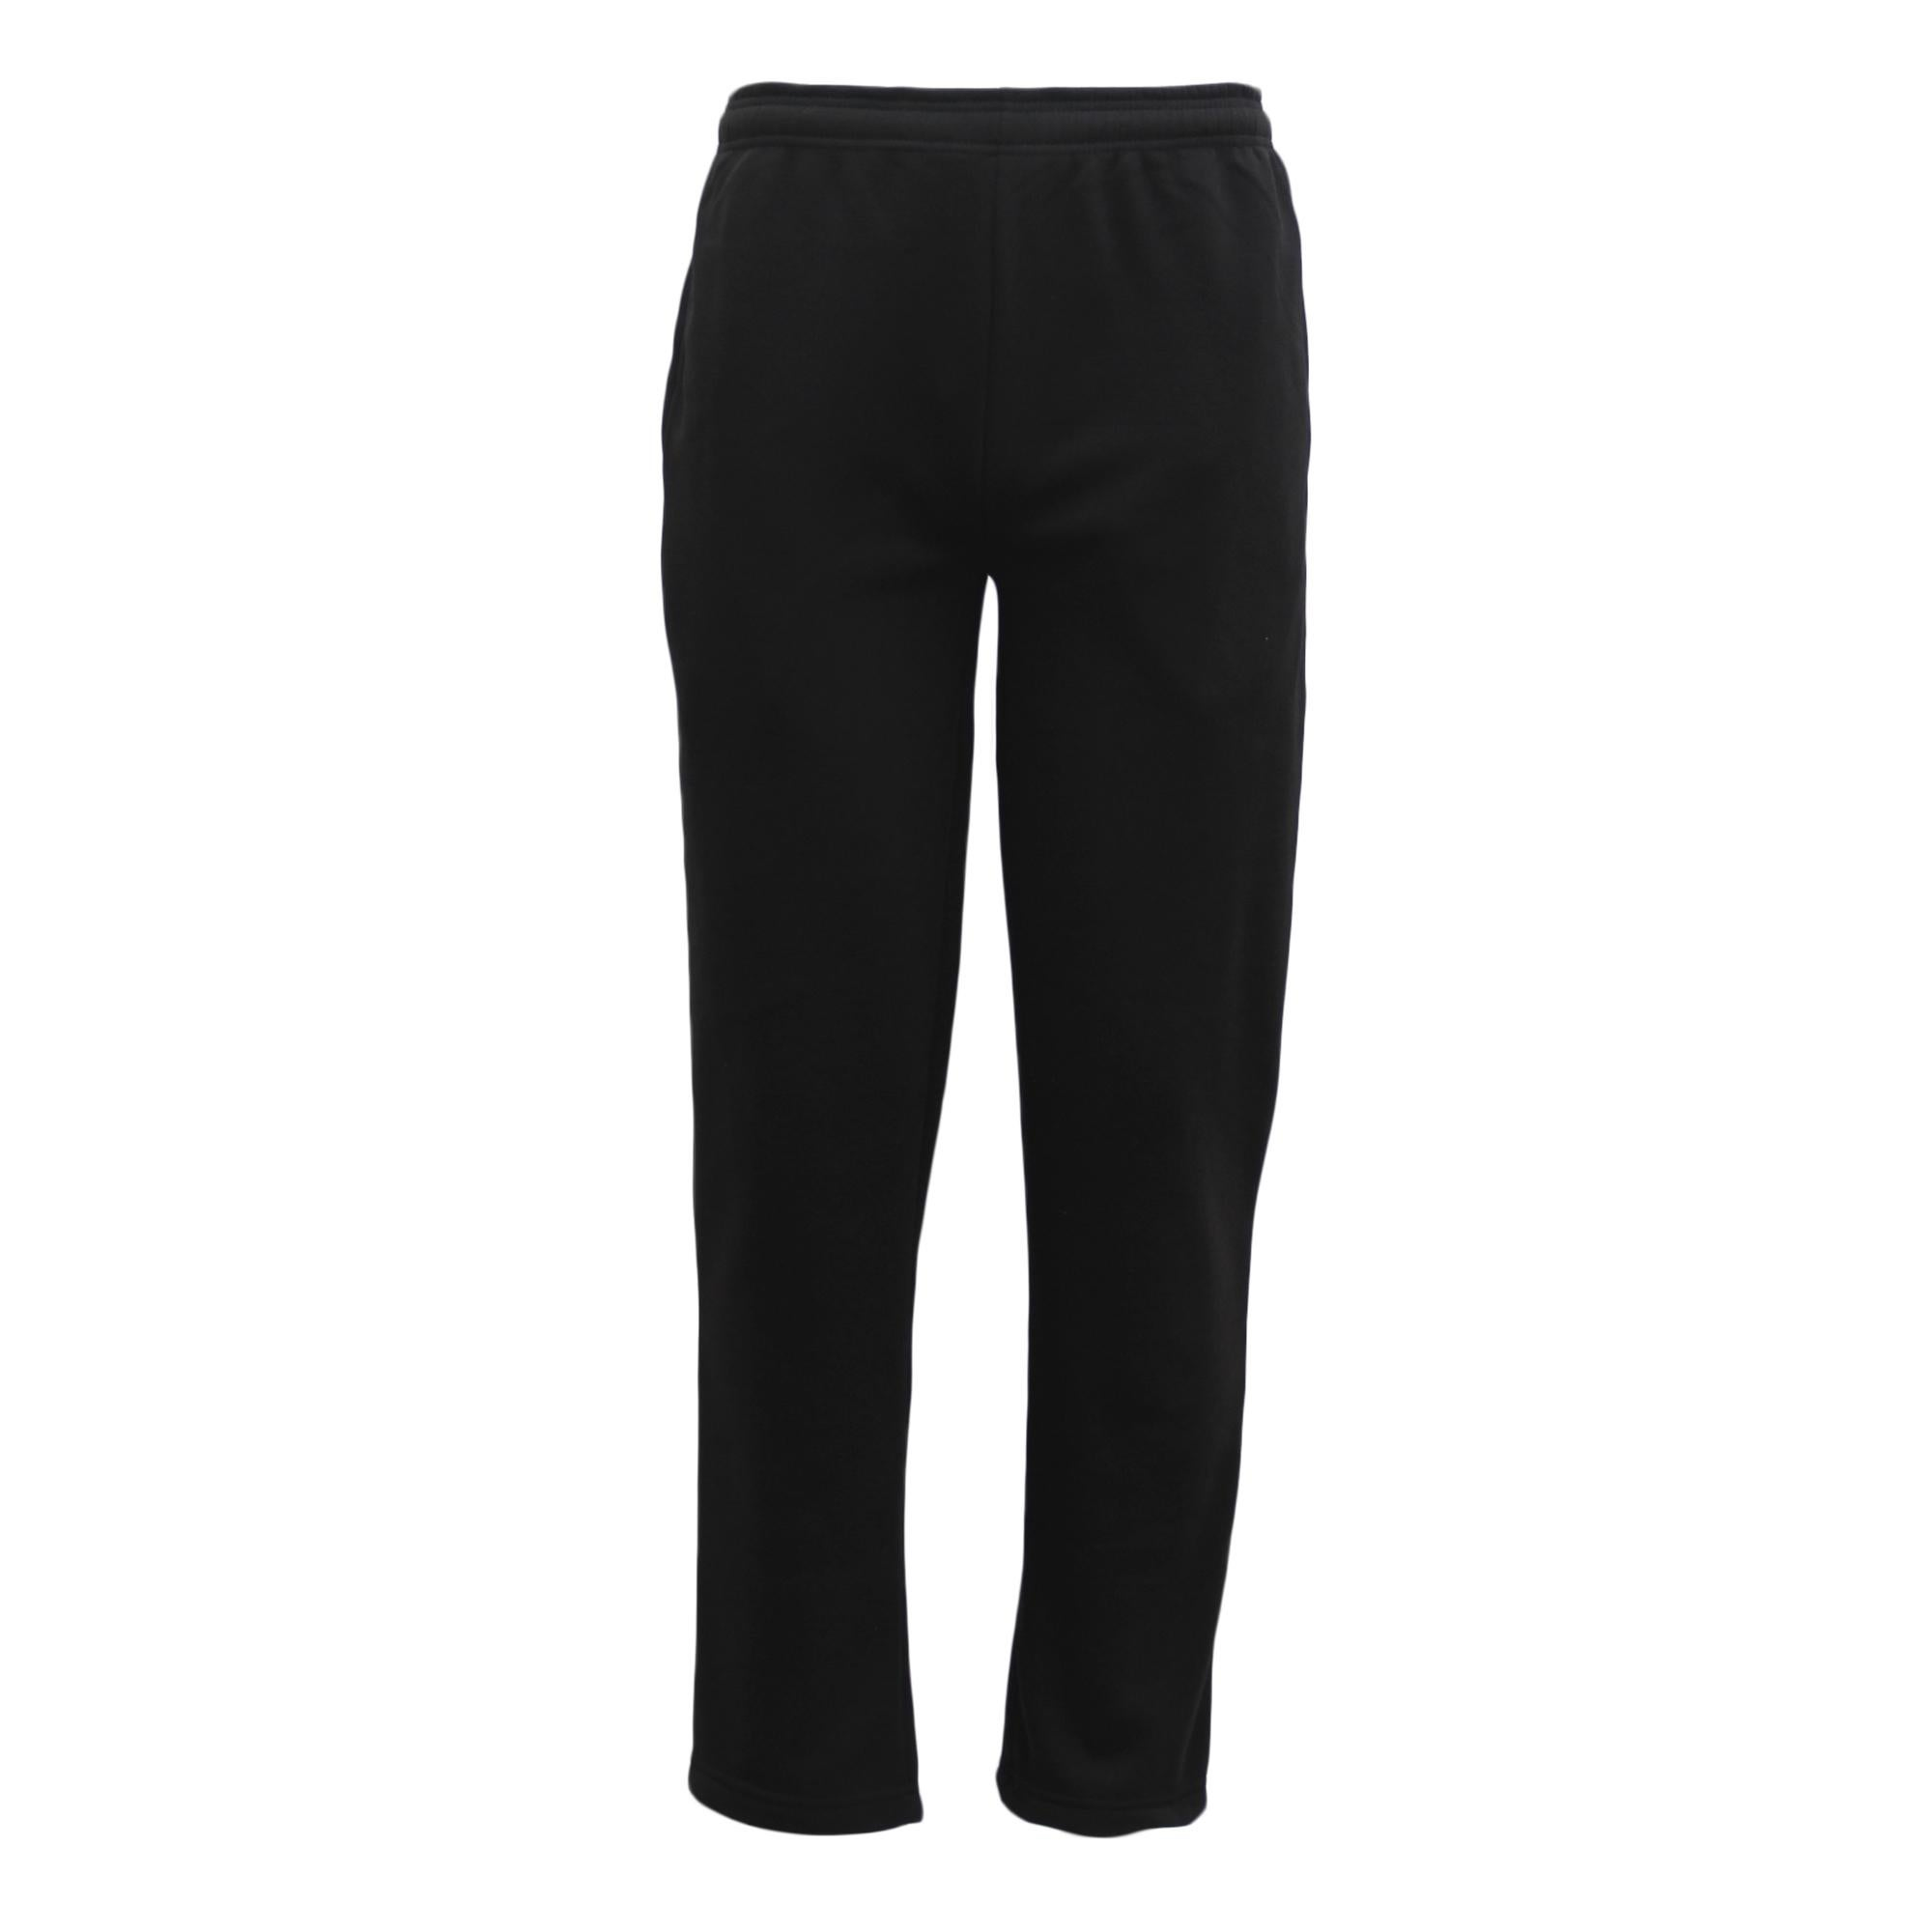 Womens Ladies Fleece Lined Slim Cuffed Hem Trousers Track Pants Jogger Trackies